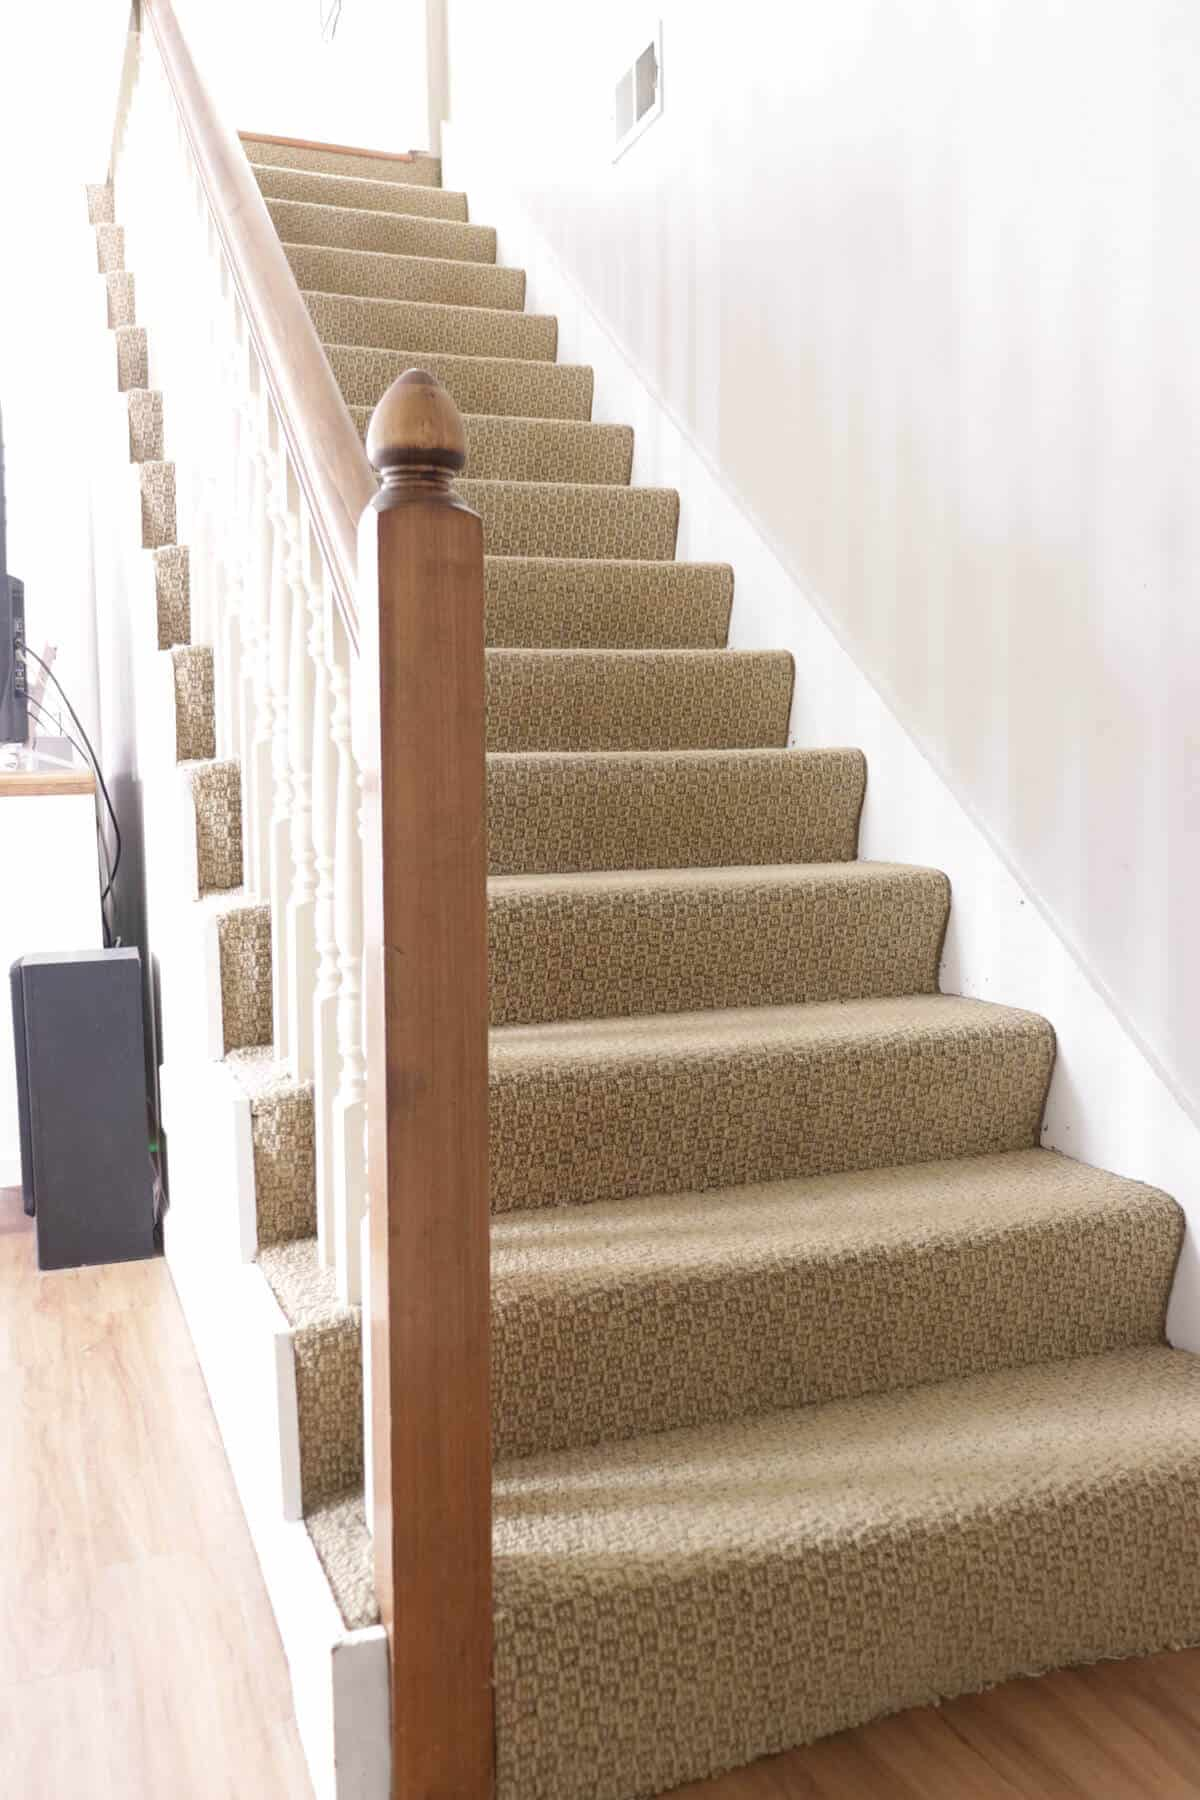 dated stairway with ugly tan carpet